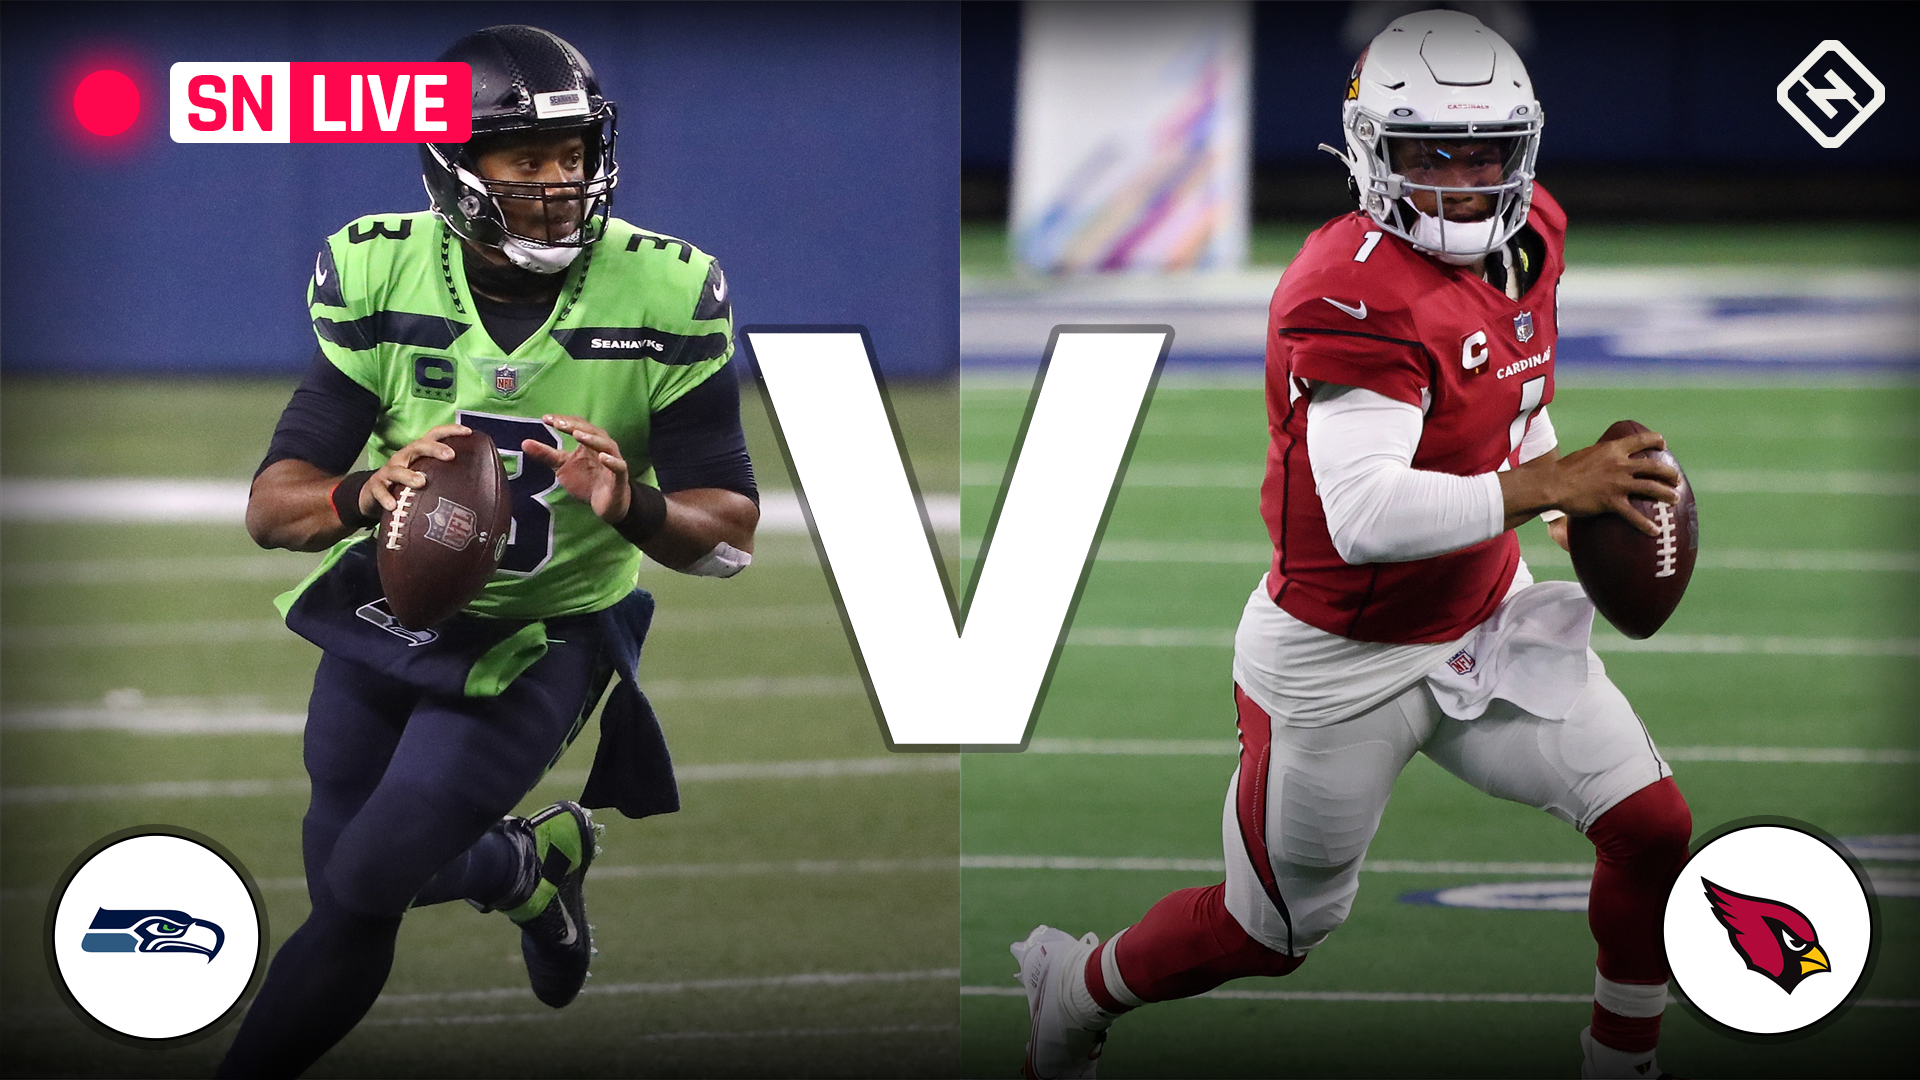 Seahawks vs Cardinals live score, updates, highlights from 'Sunday Night Football' game